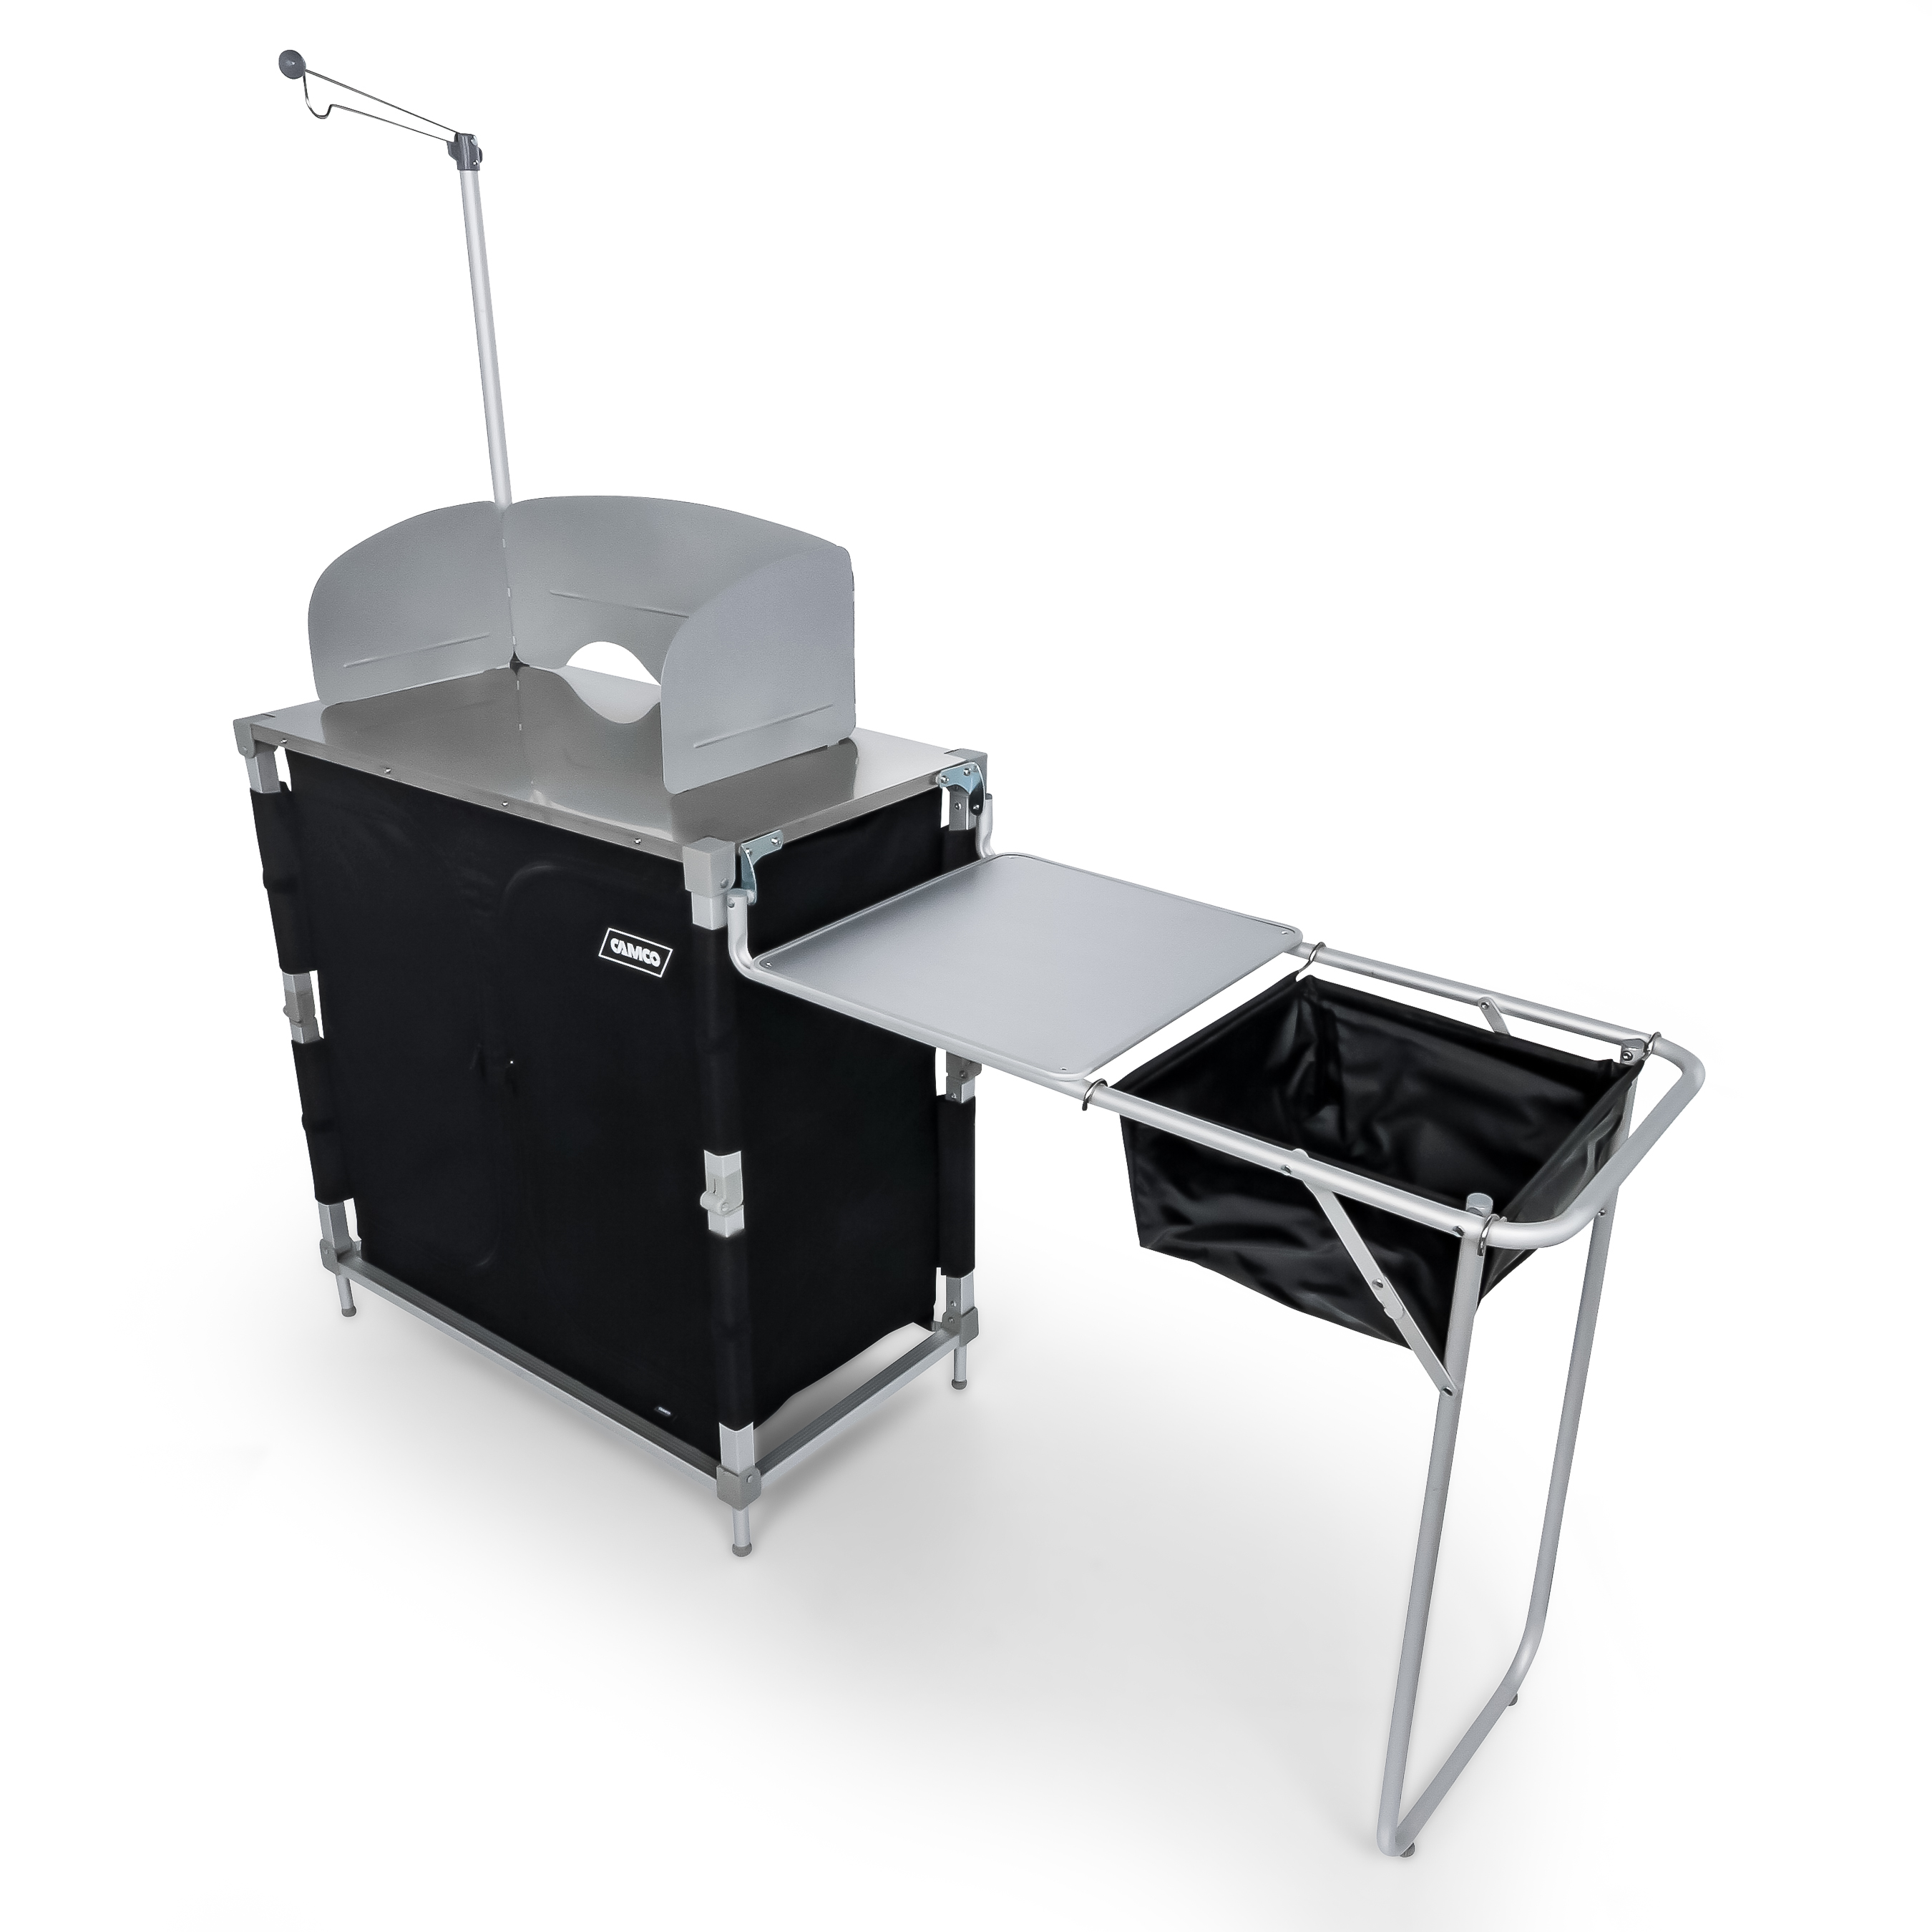 Camco 51097 Deluxe Camping Kitchen/Grill Table